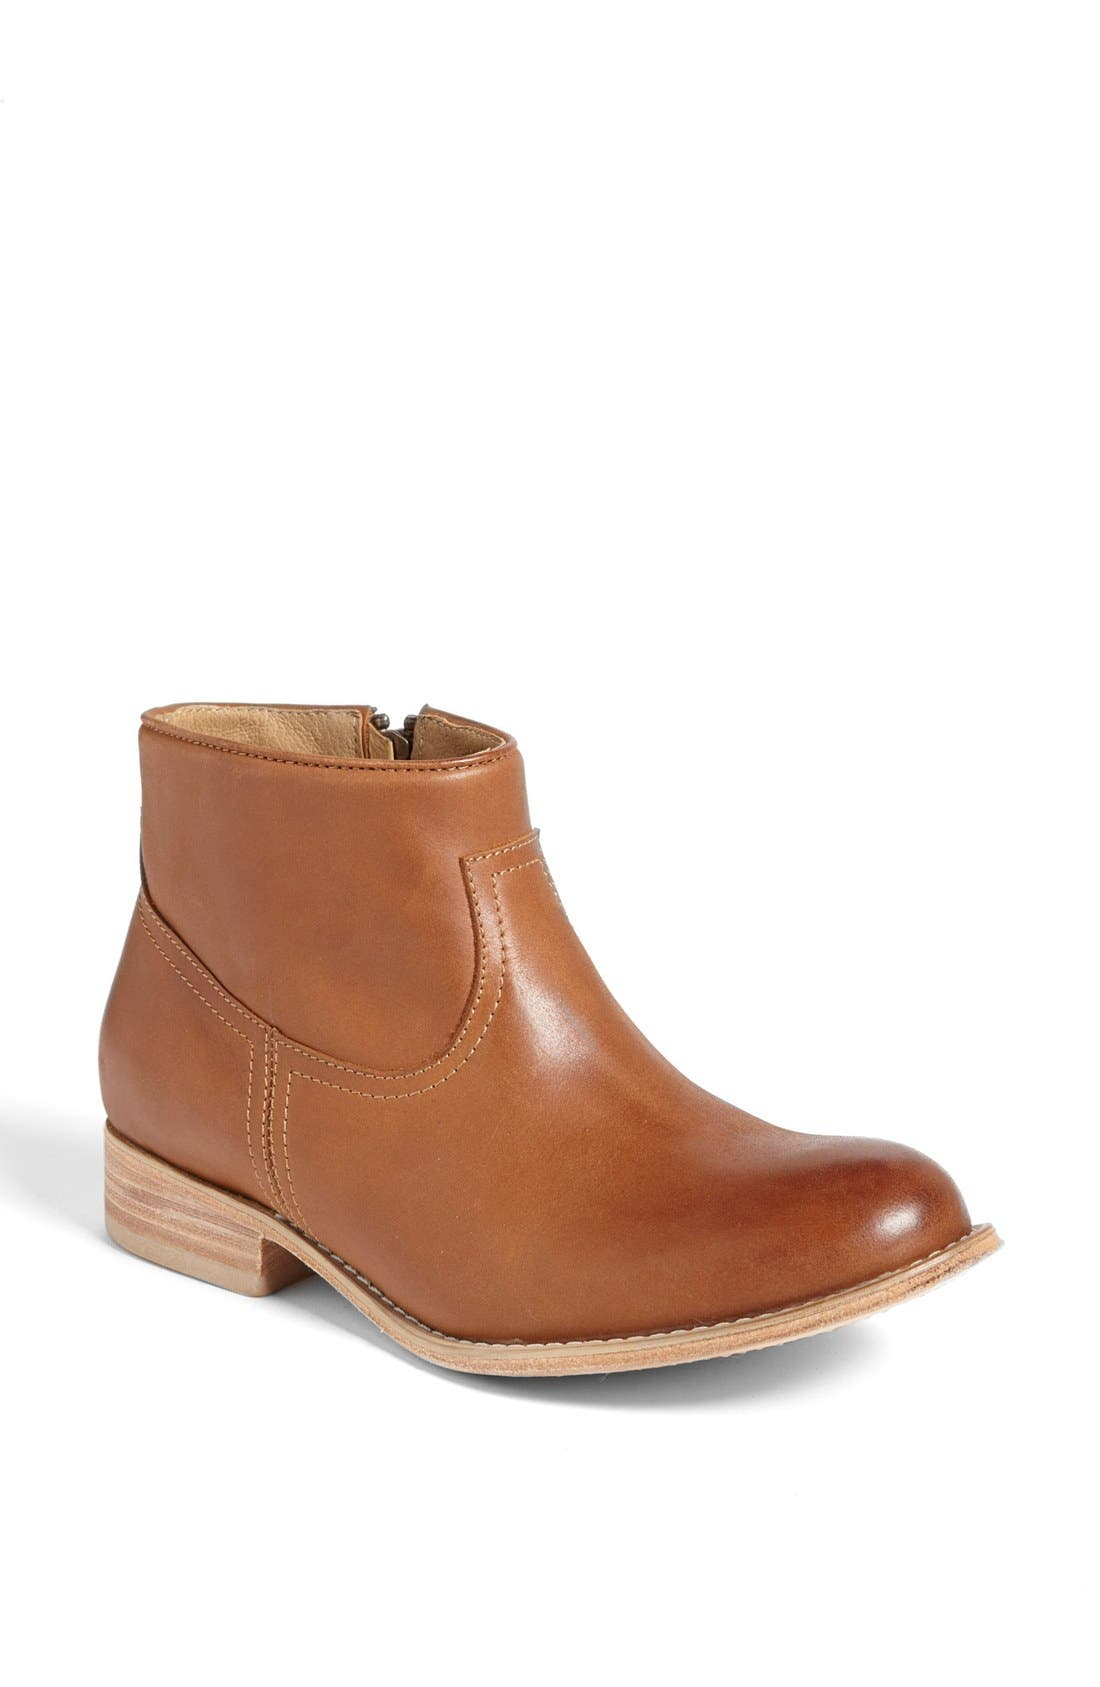 Main Image - Hinge 'Sabor' Short Boot